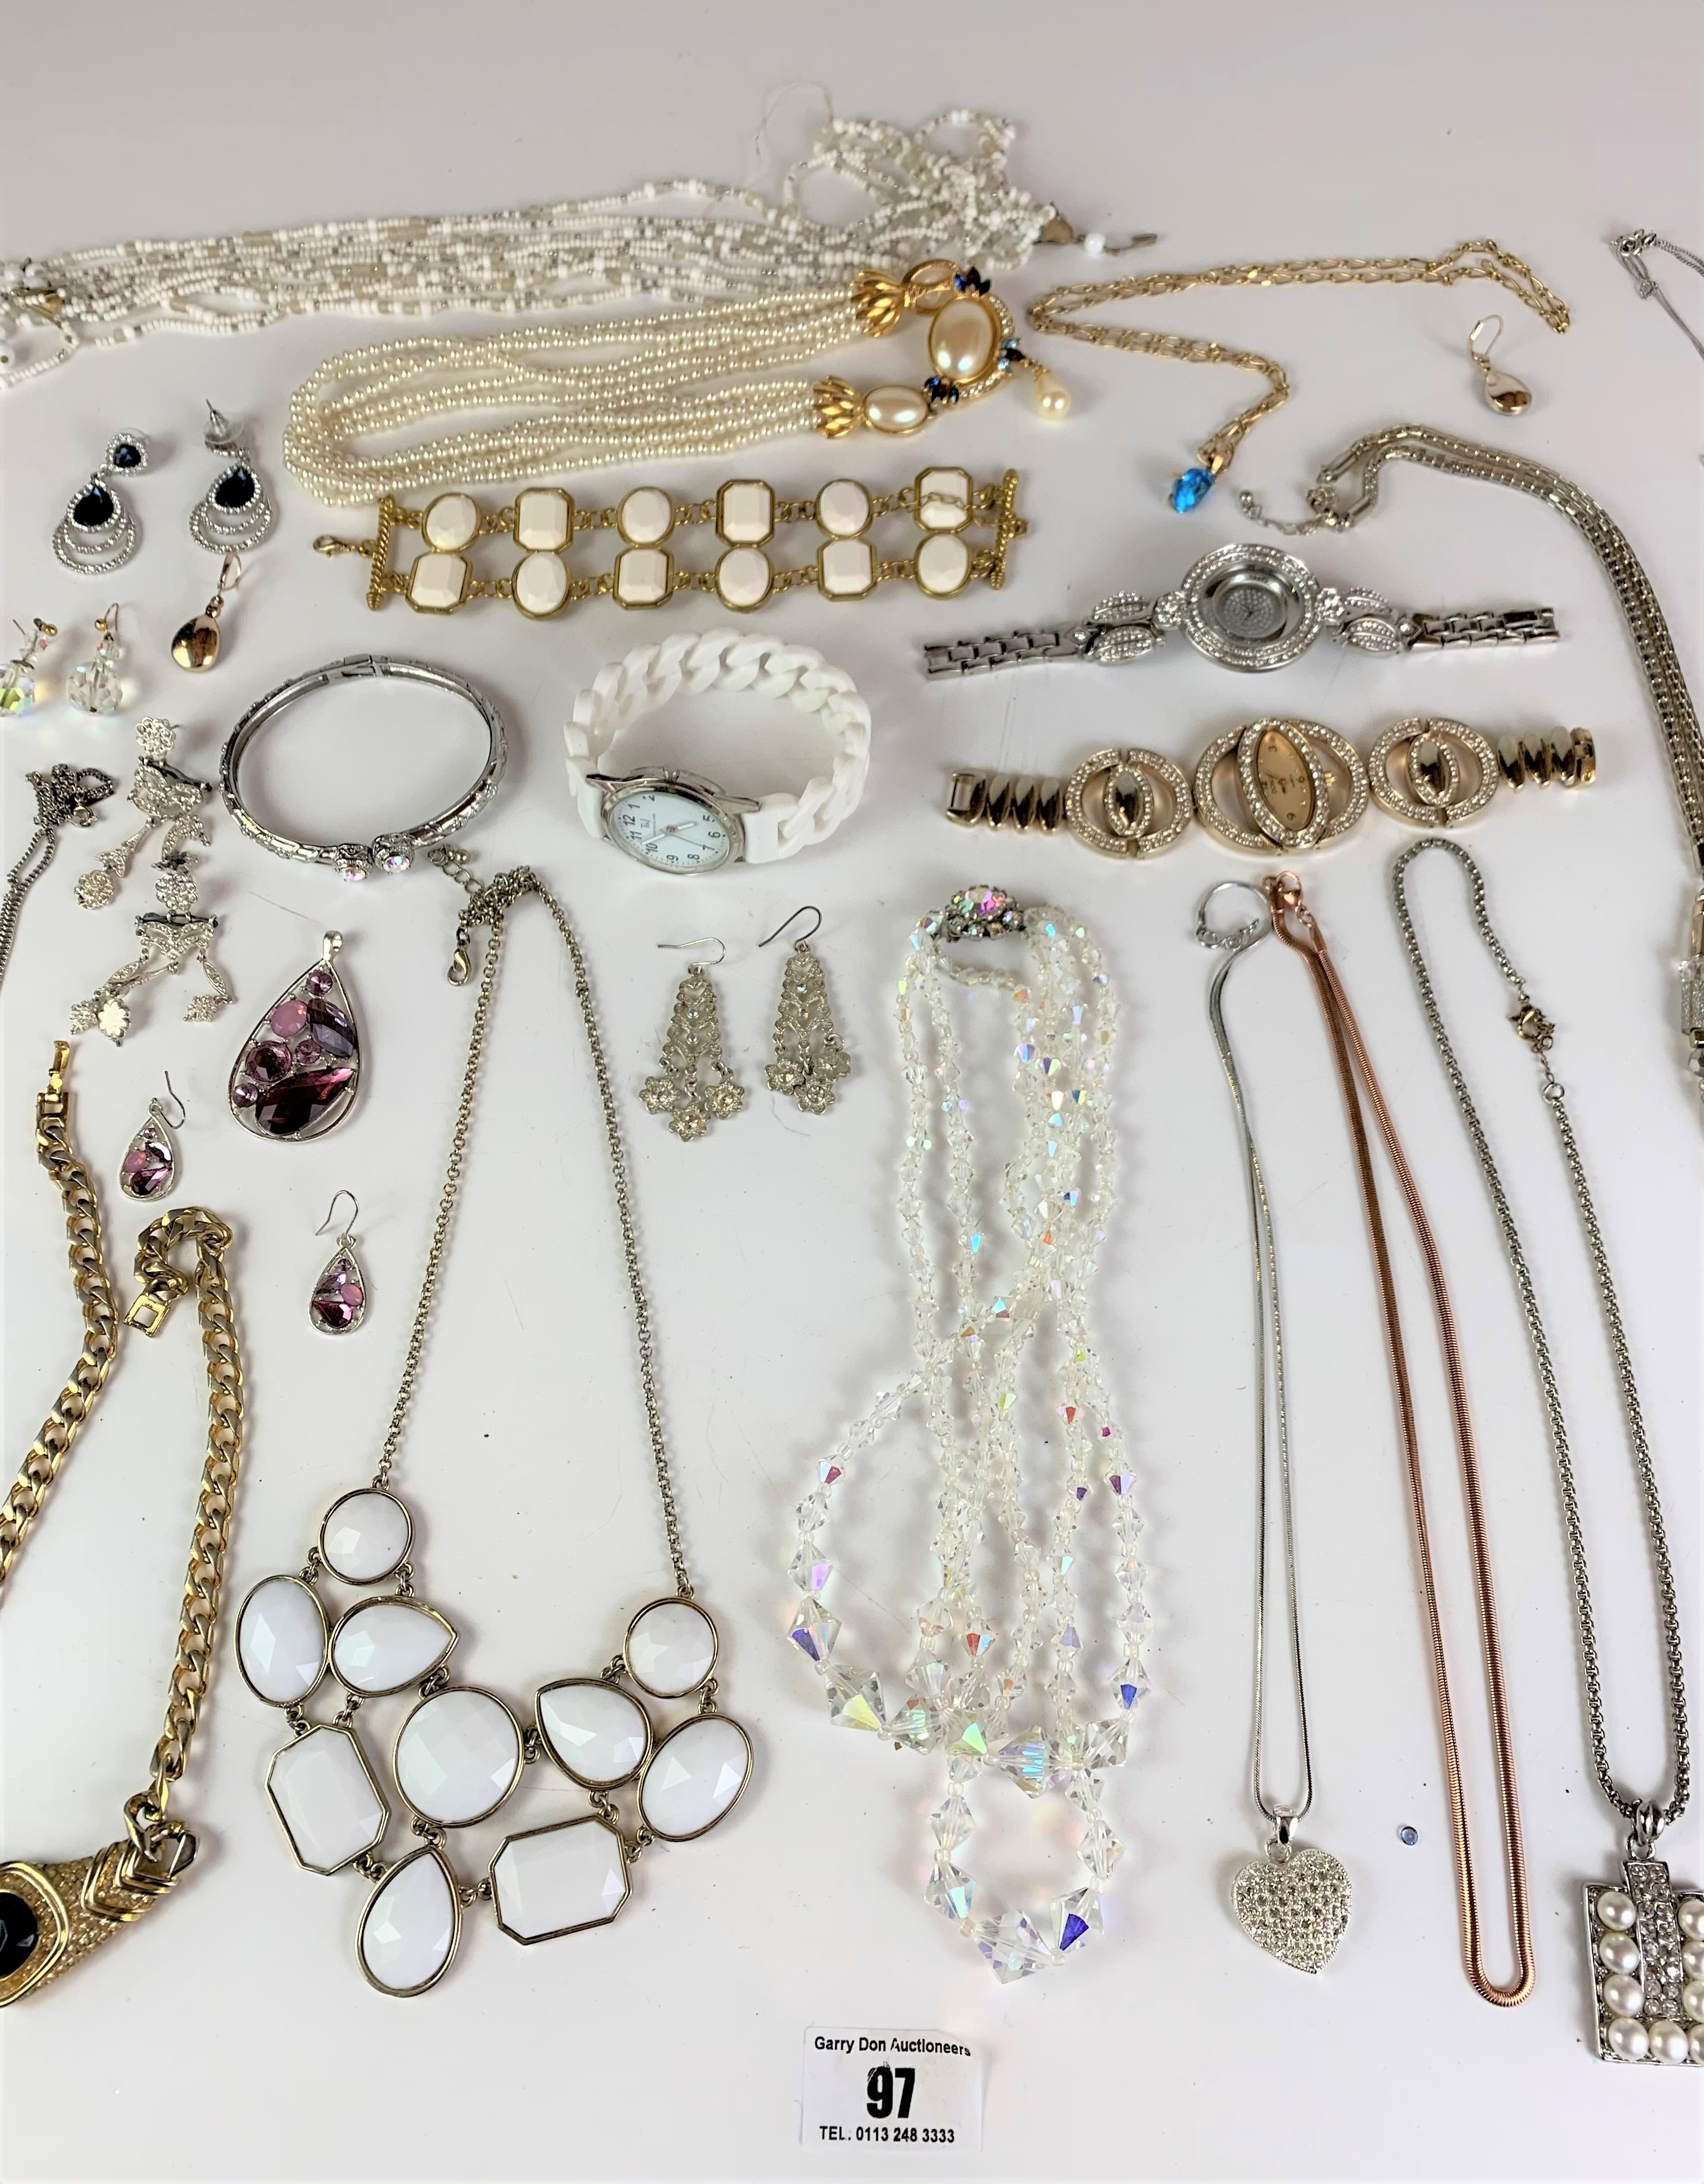 Large bag of assorted dress jewellery including necklaces, bracelets, earrings, etc. - Image 3 of 6